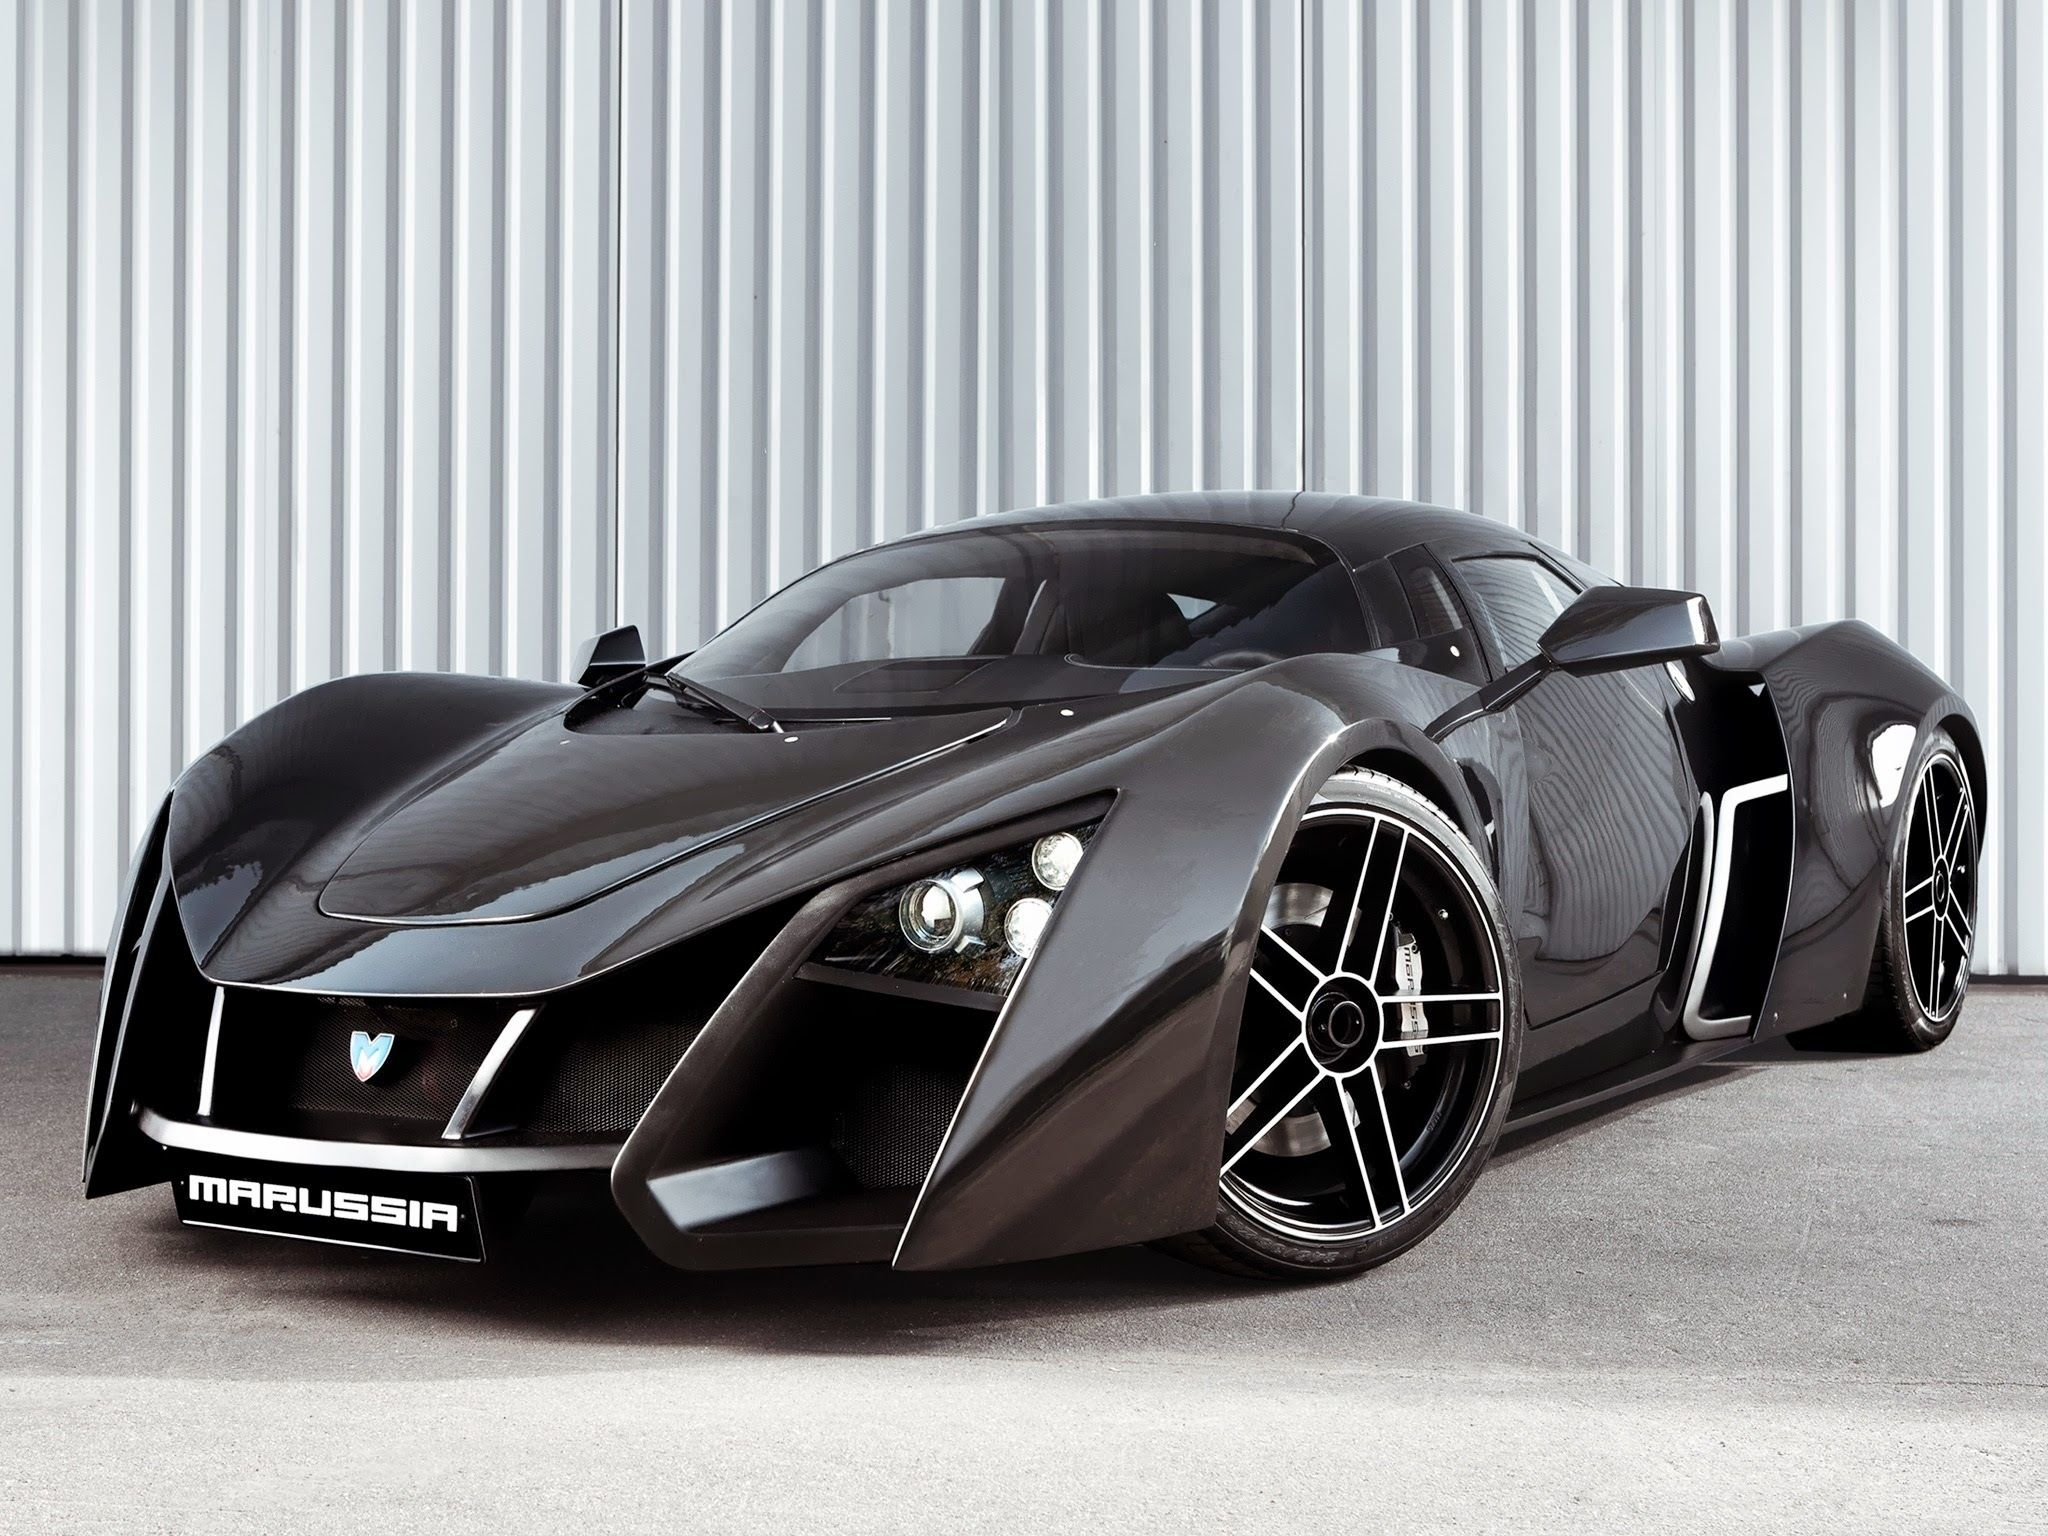 Pin By Saber Abedini On Car Super Cars Sports Cars Luxury Amazing Cars